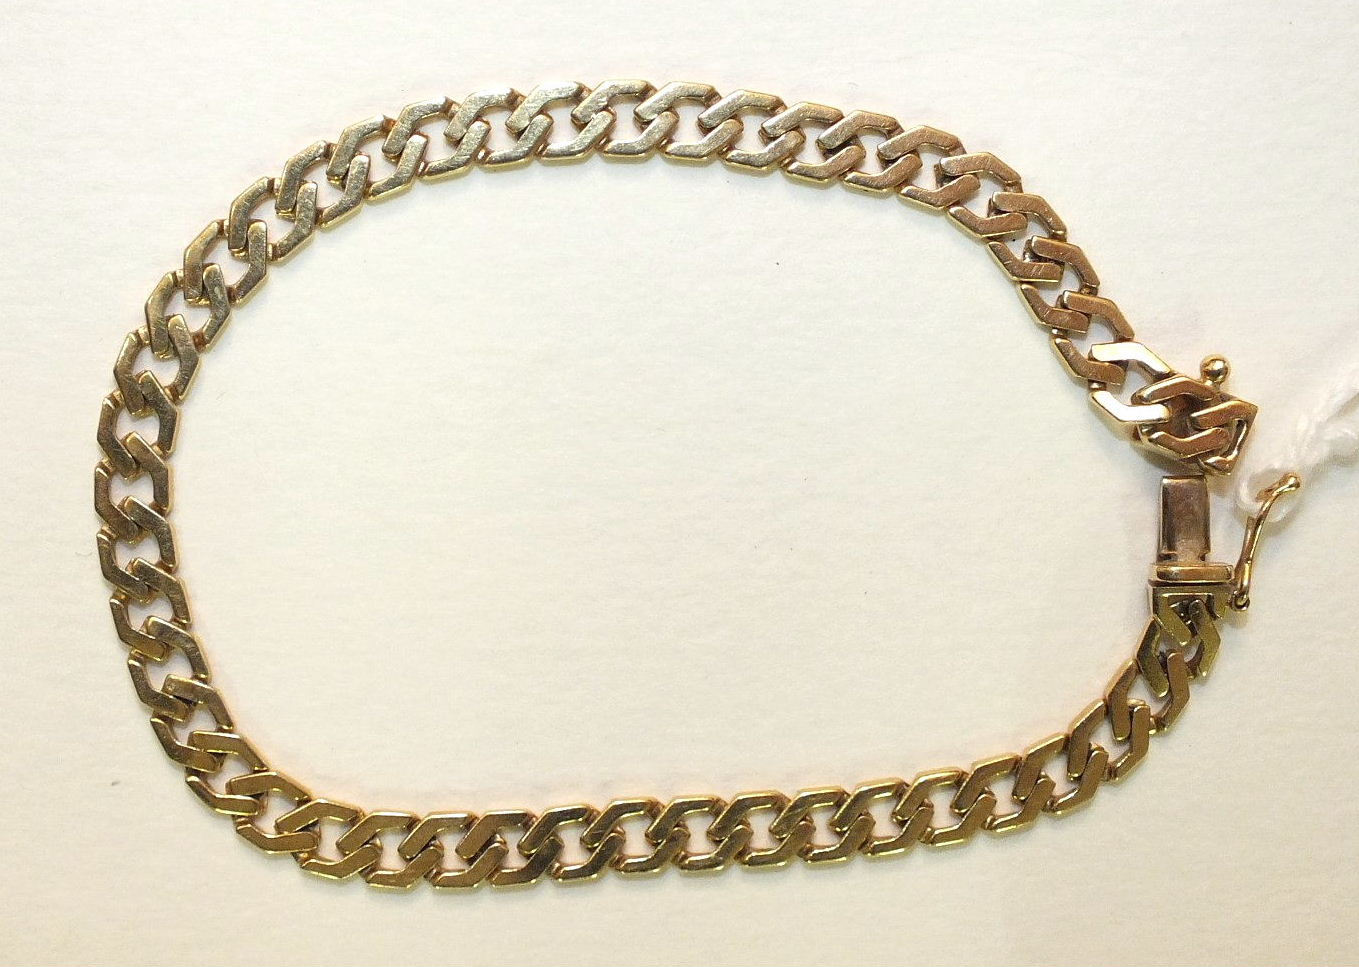 An 18ct yellow gold bracelet of flattened curb links, with concealed clasp, 18.5cm, 11.2g.